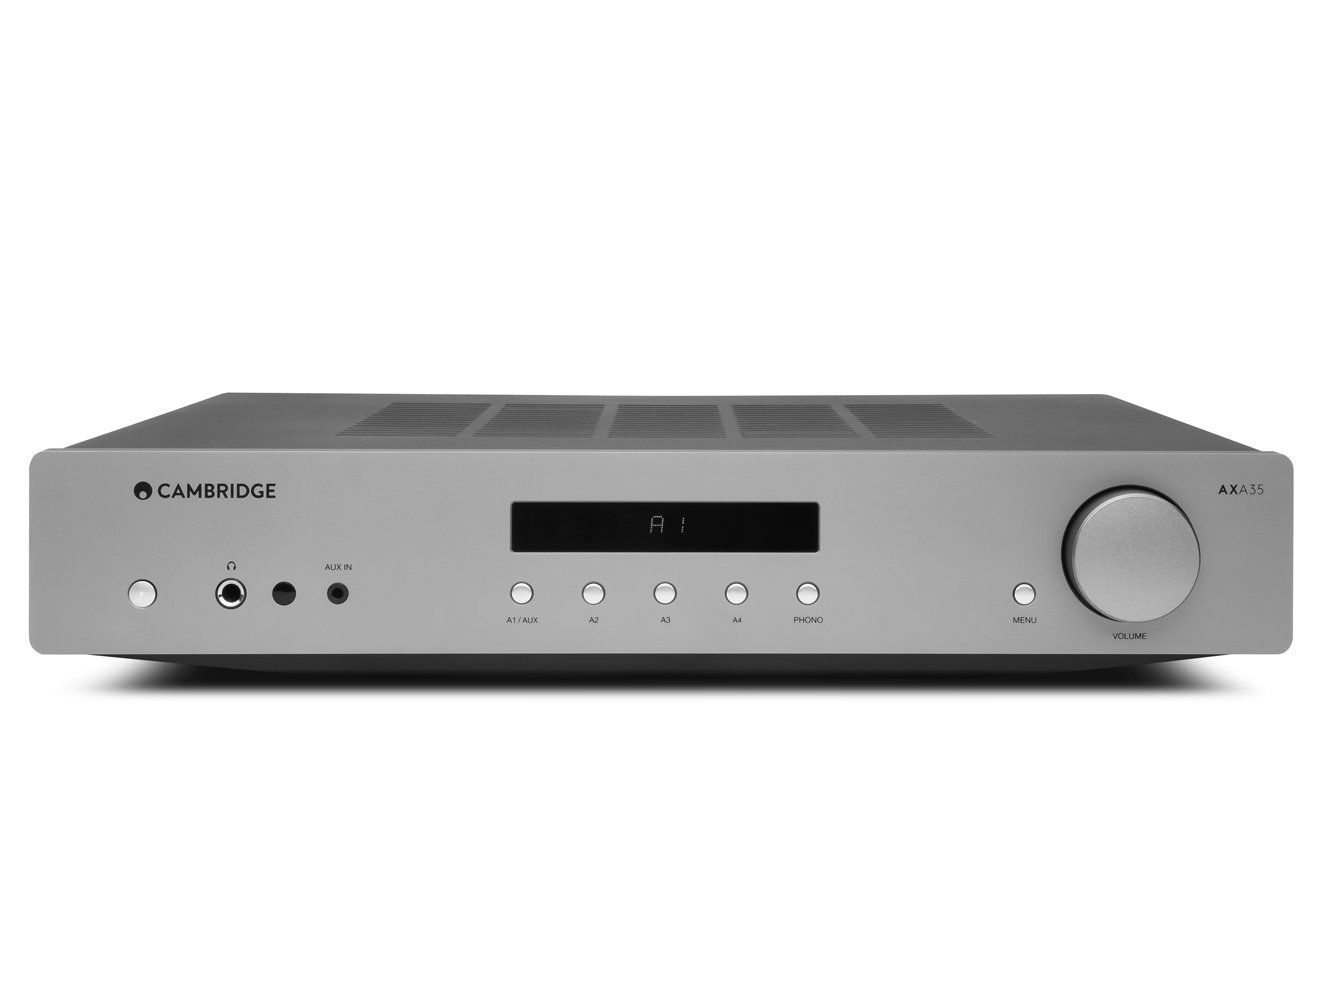 AXA35 Integrated Amplifier Grey